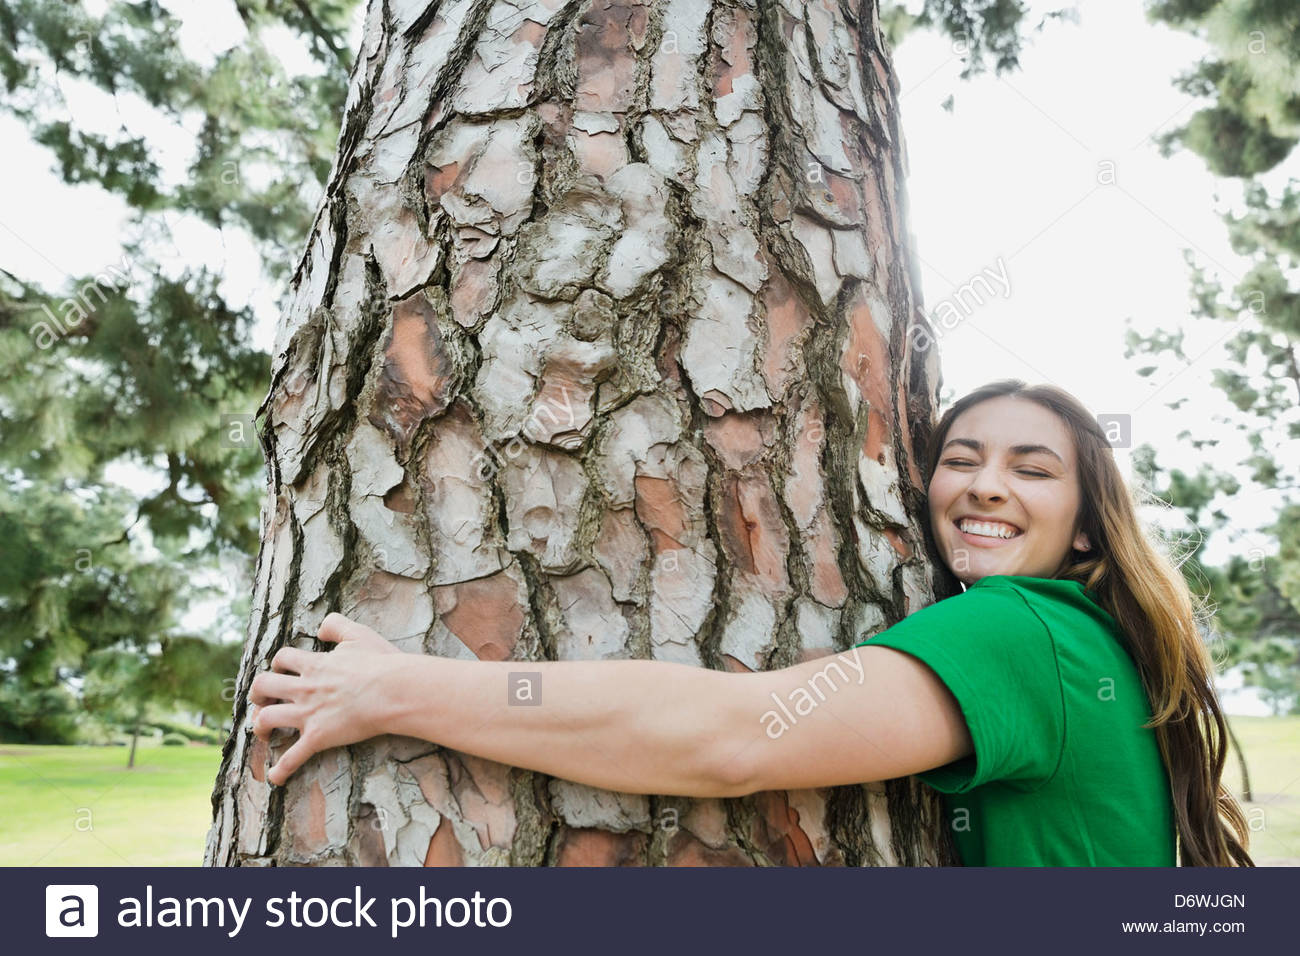 Side view of happy young woman hugging tree in park - Stock Image